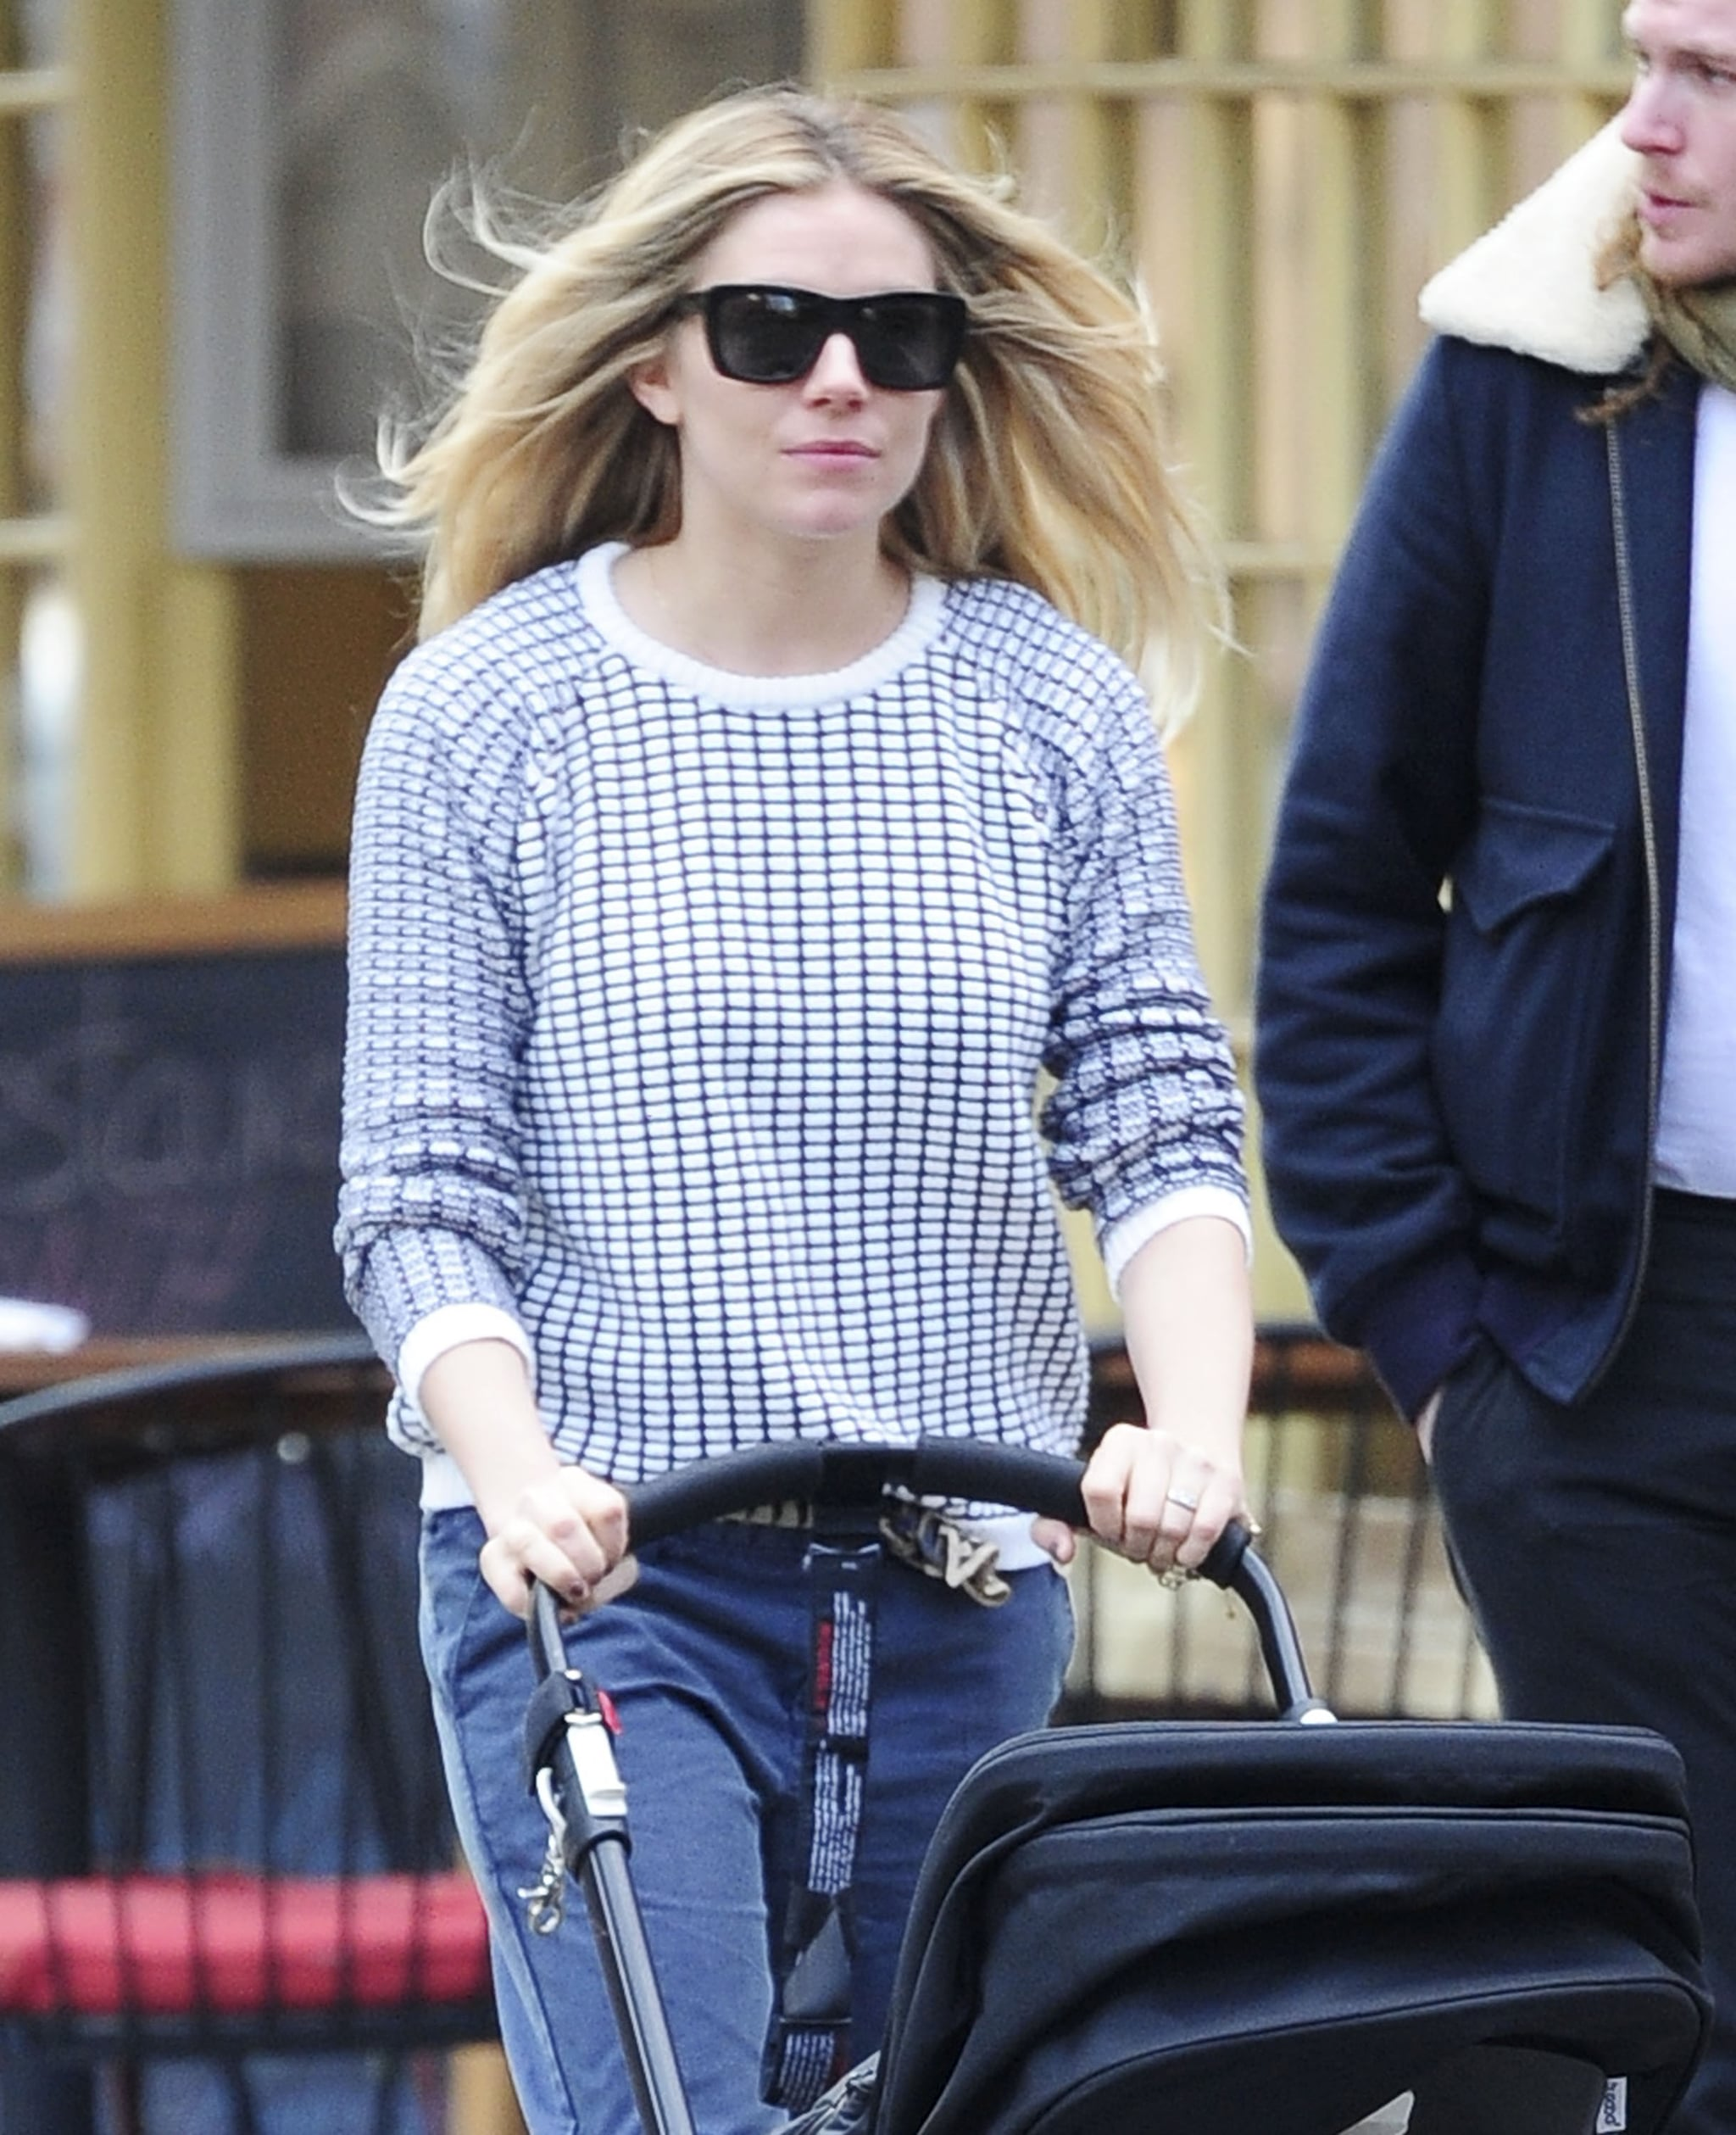 Sienna Miller wore sunglasses and a sweater while getting fresh air in NYC.